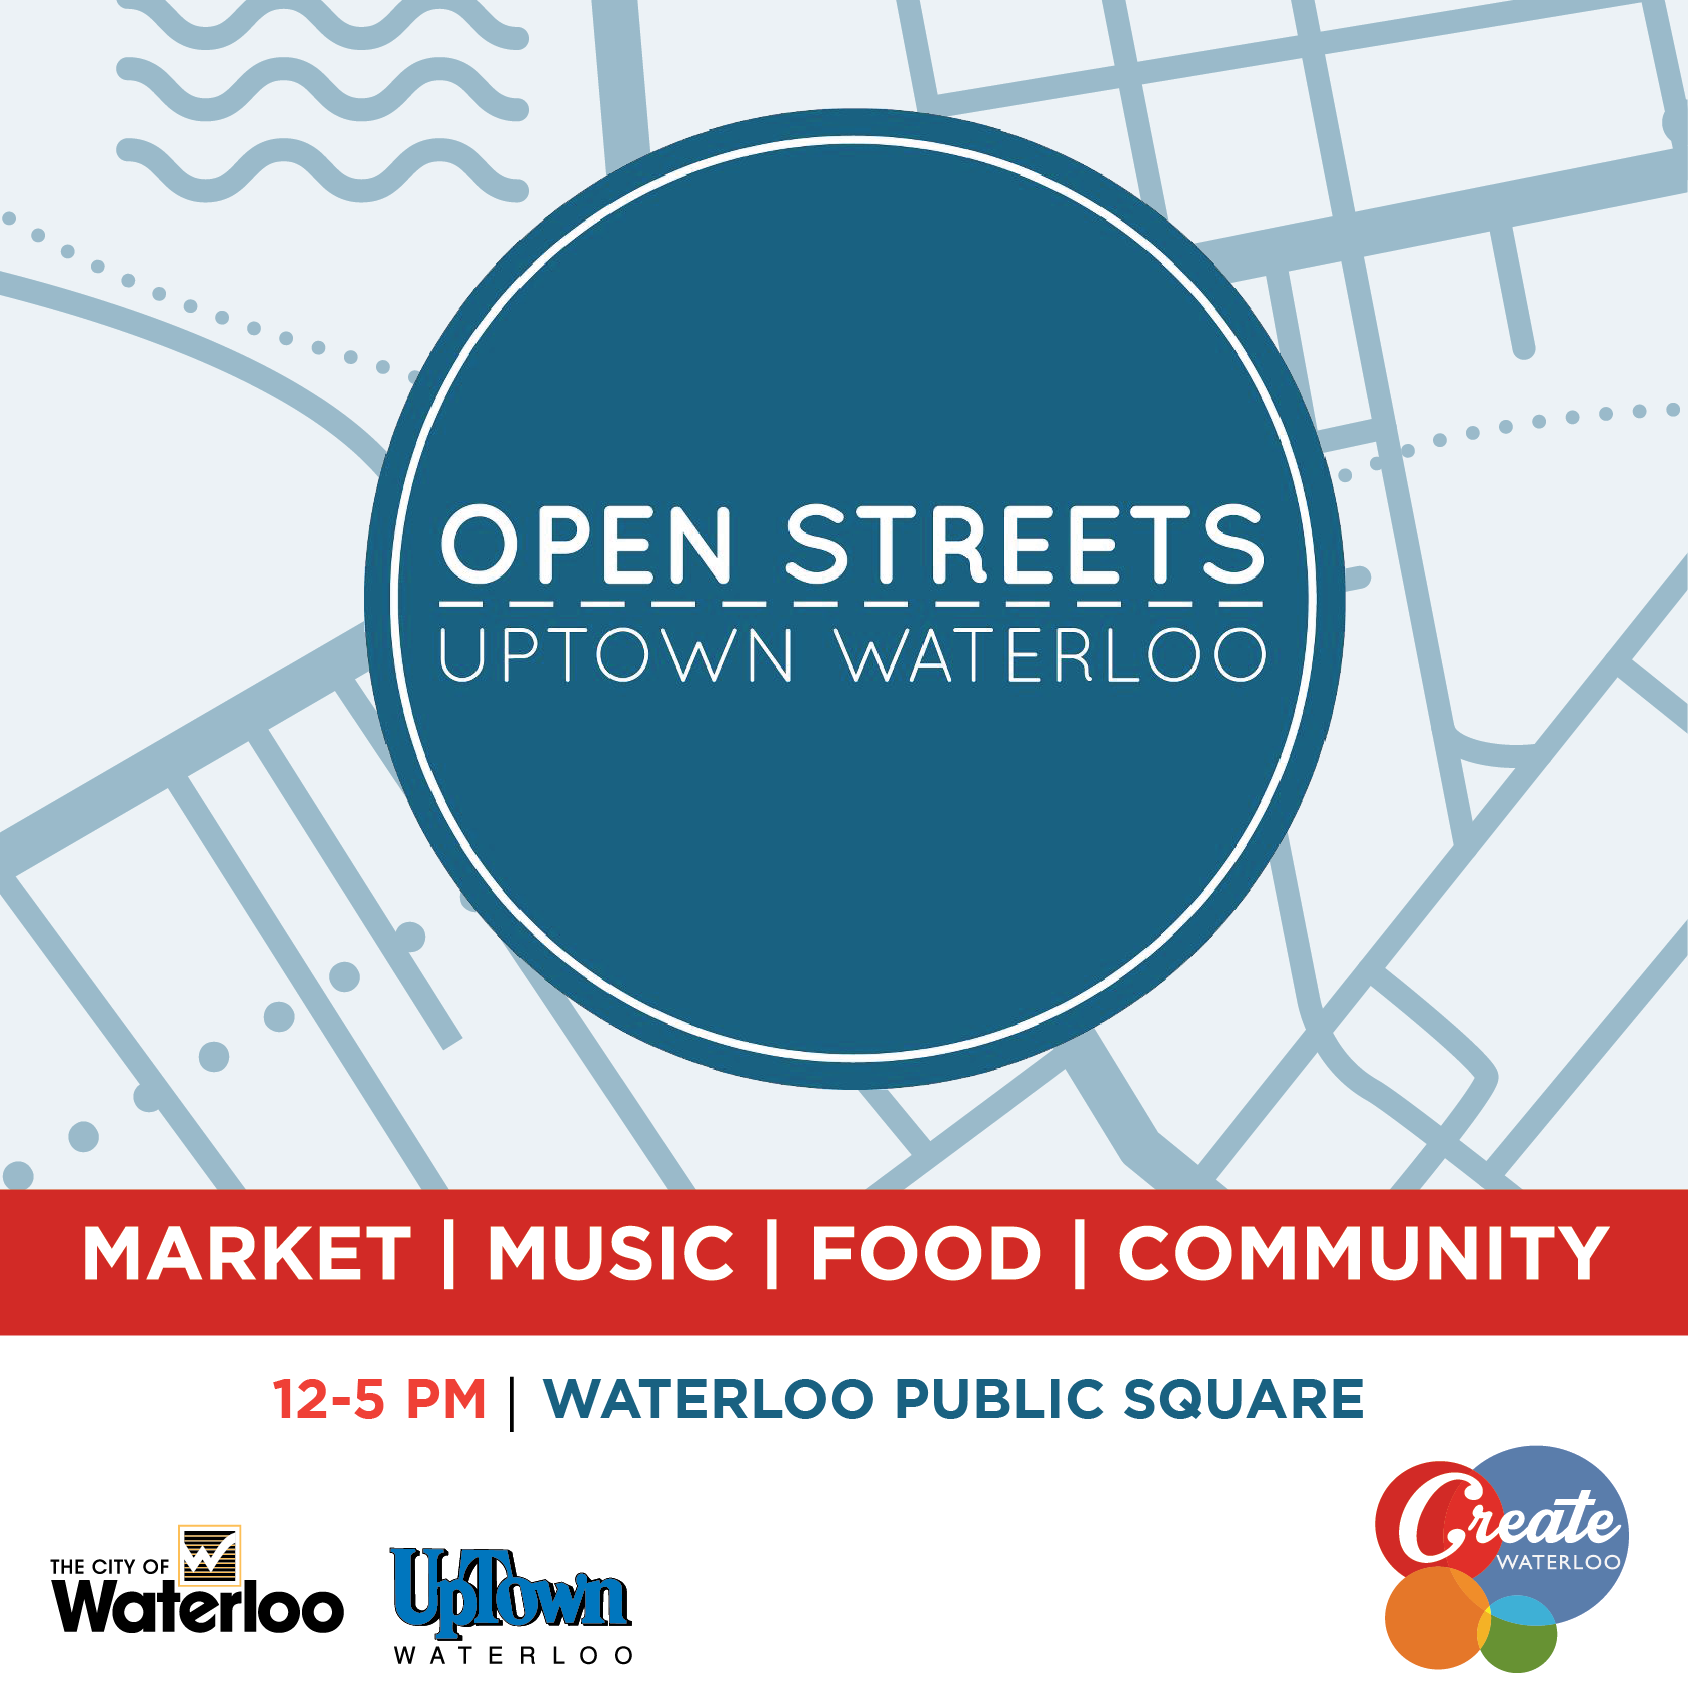 Open Streets: Battle/Competition | Uptown Waterloo Business ...